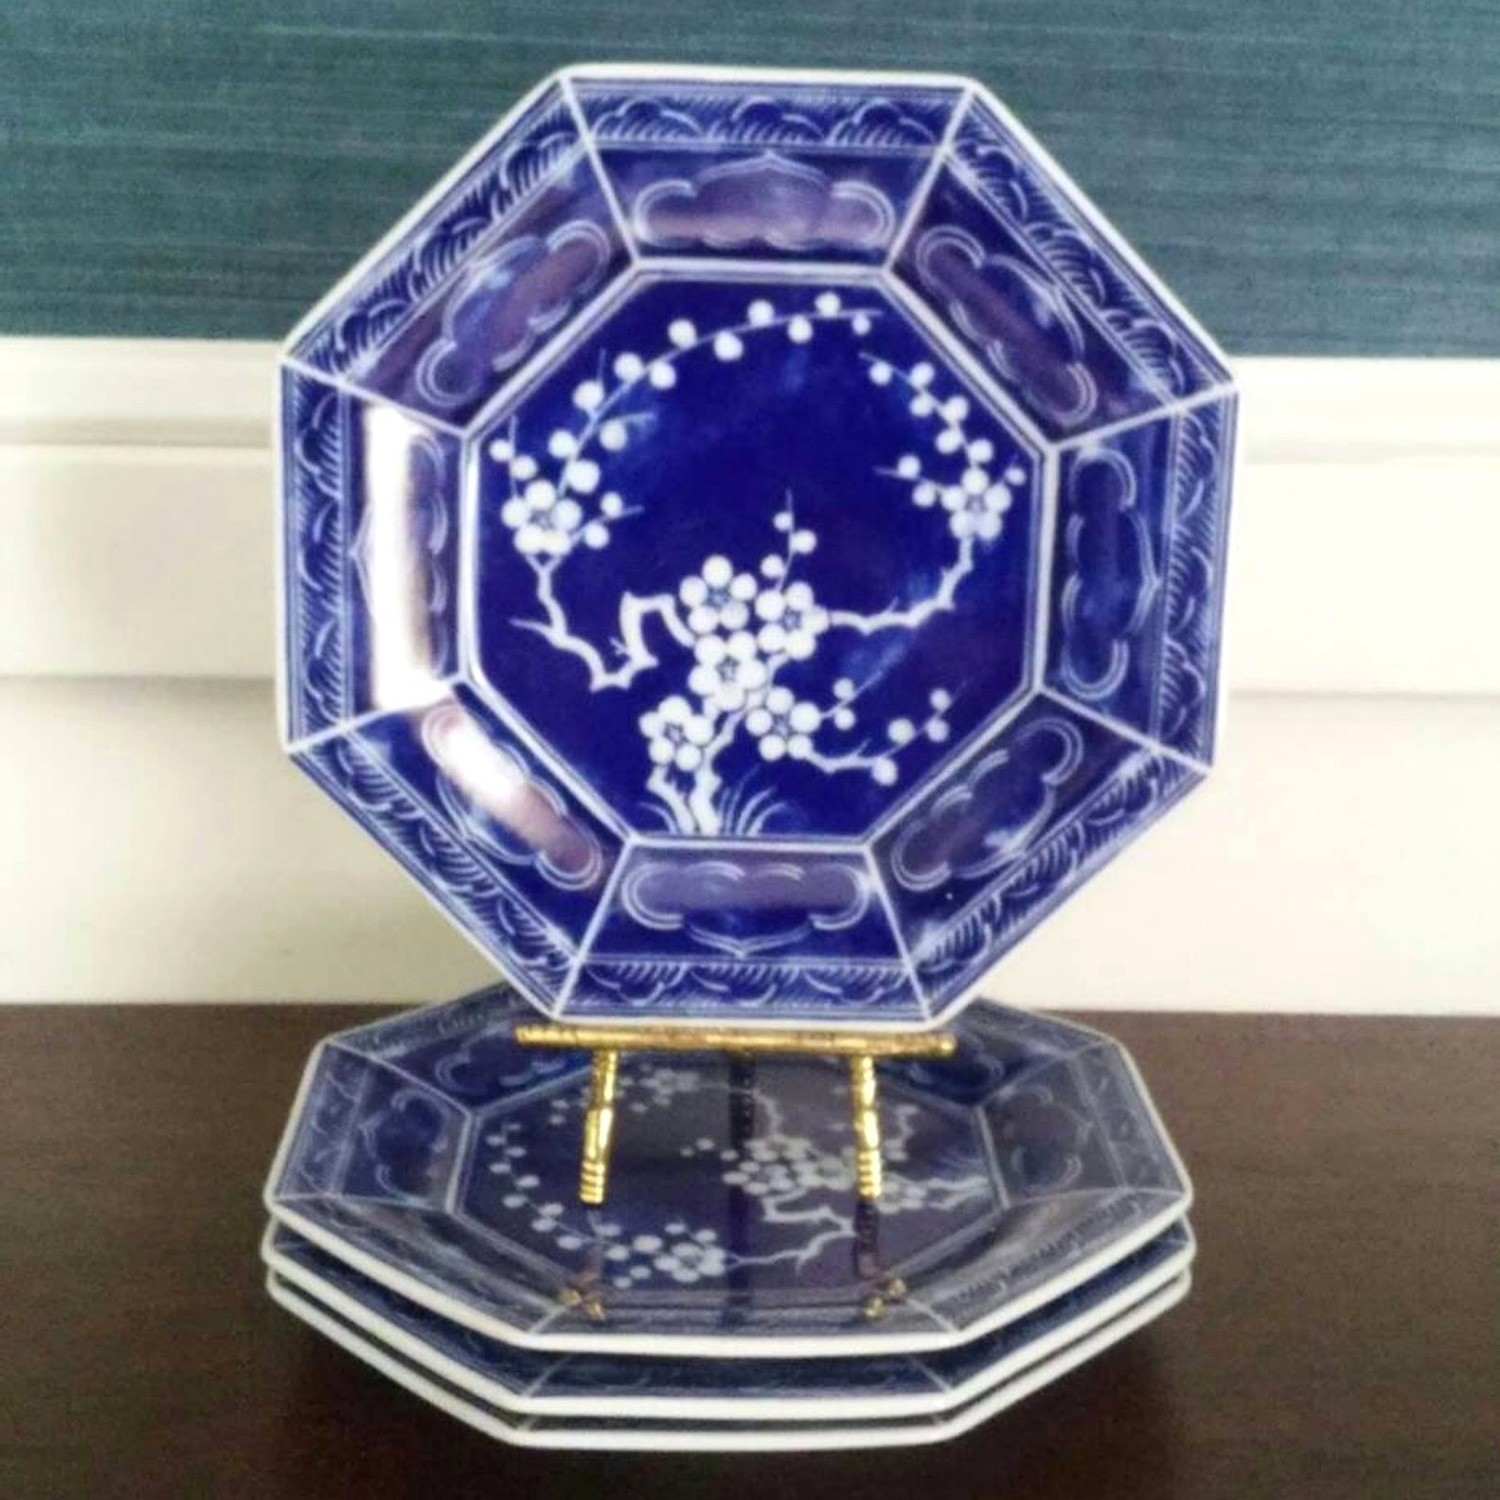 Vintage Mikasa Plum Blossom Blue and White Porcelain Octagonal Luncheon Plates (Set of 4)